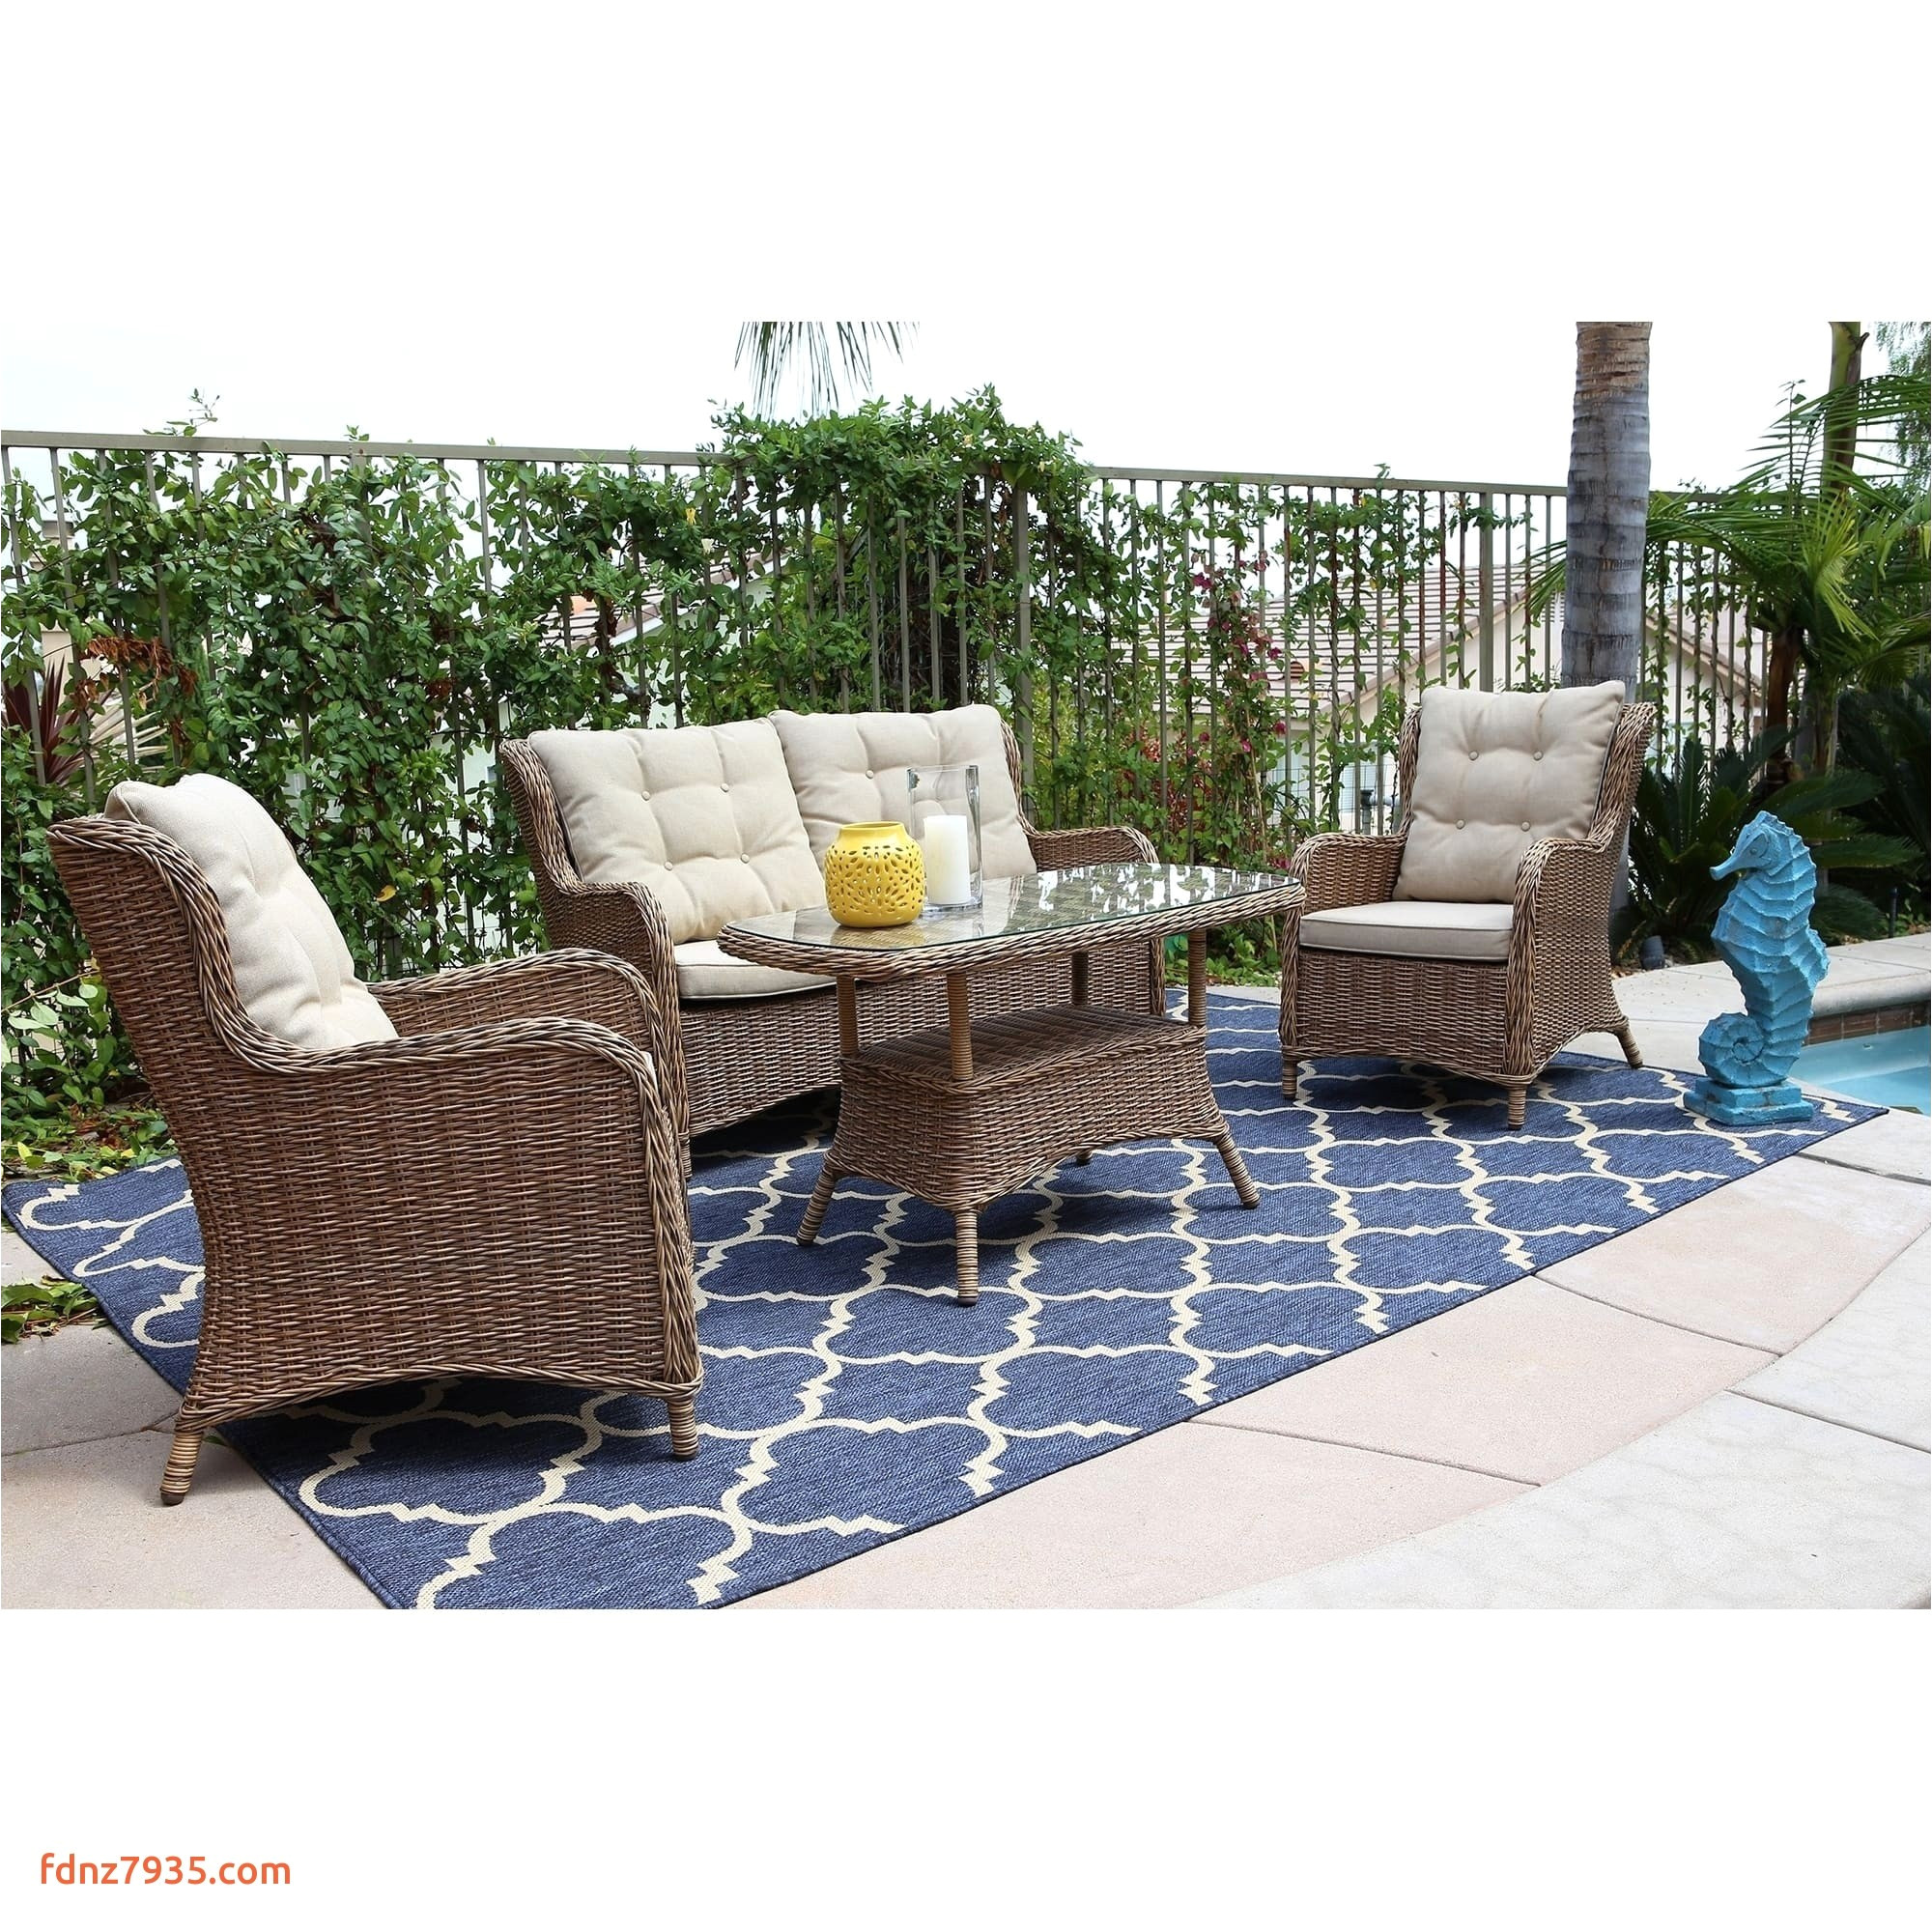 cast aluminum patio furniture conversation sets awesome high top patio furniture lovely wicker outdoor sofa 0d